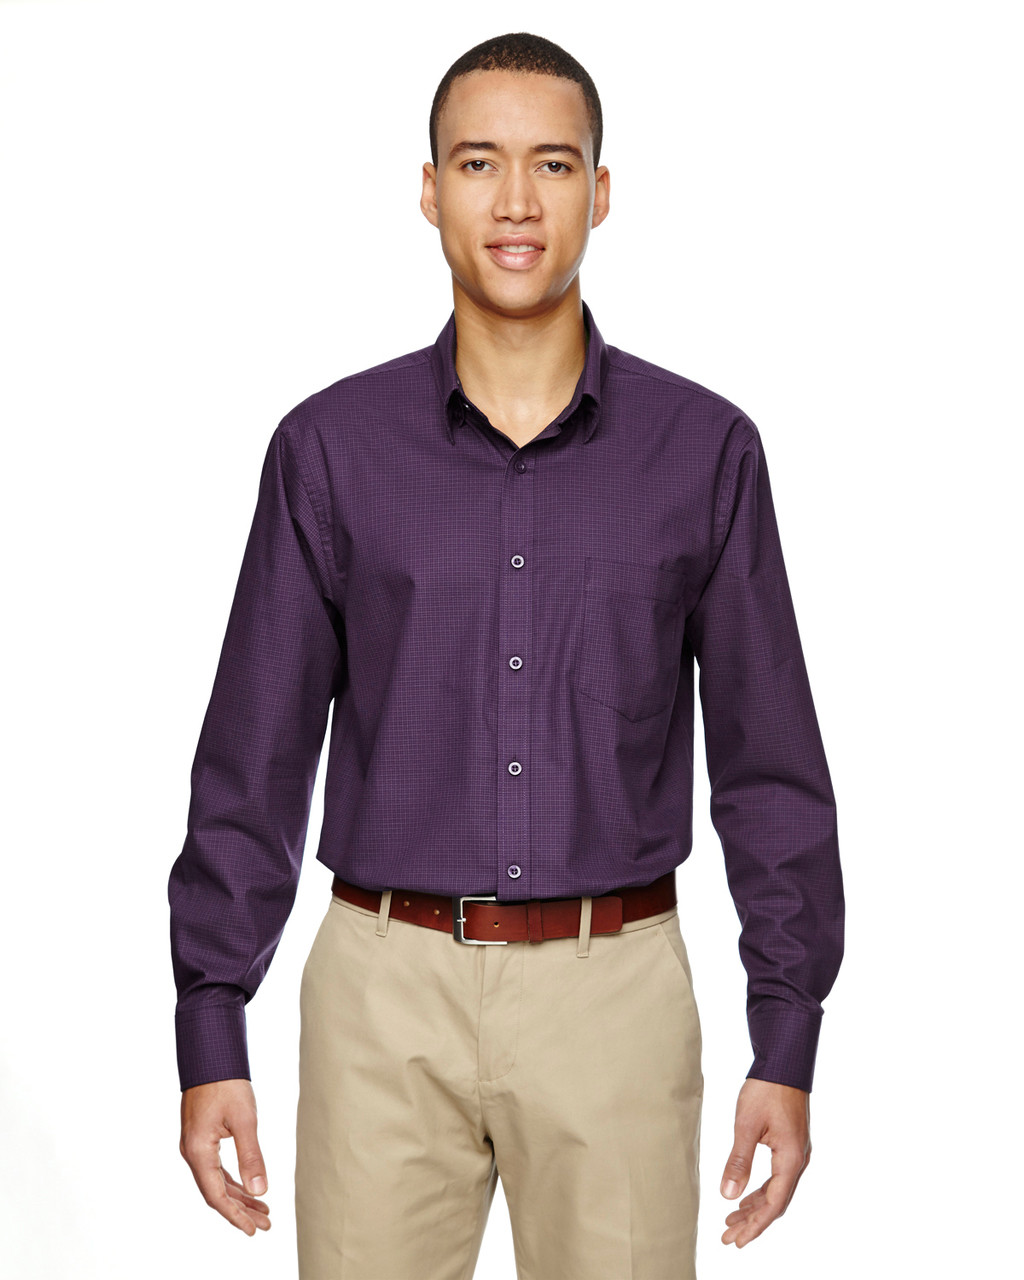 Mulbry Purpl - 87043 North End Paramount Wrinkle-Resistant Cotton Blend Twill Checkered Shirt   Blankclothing.ca